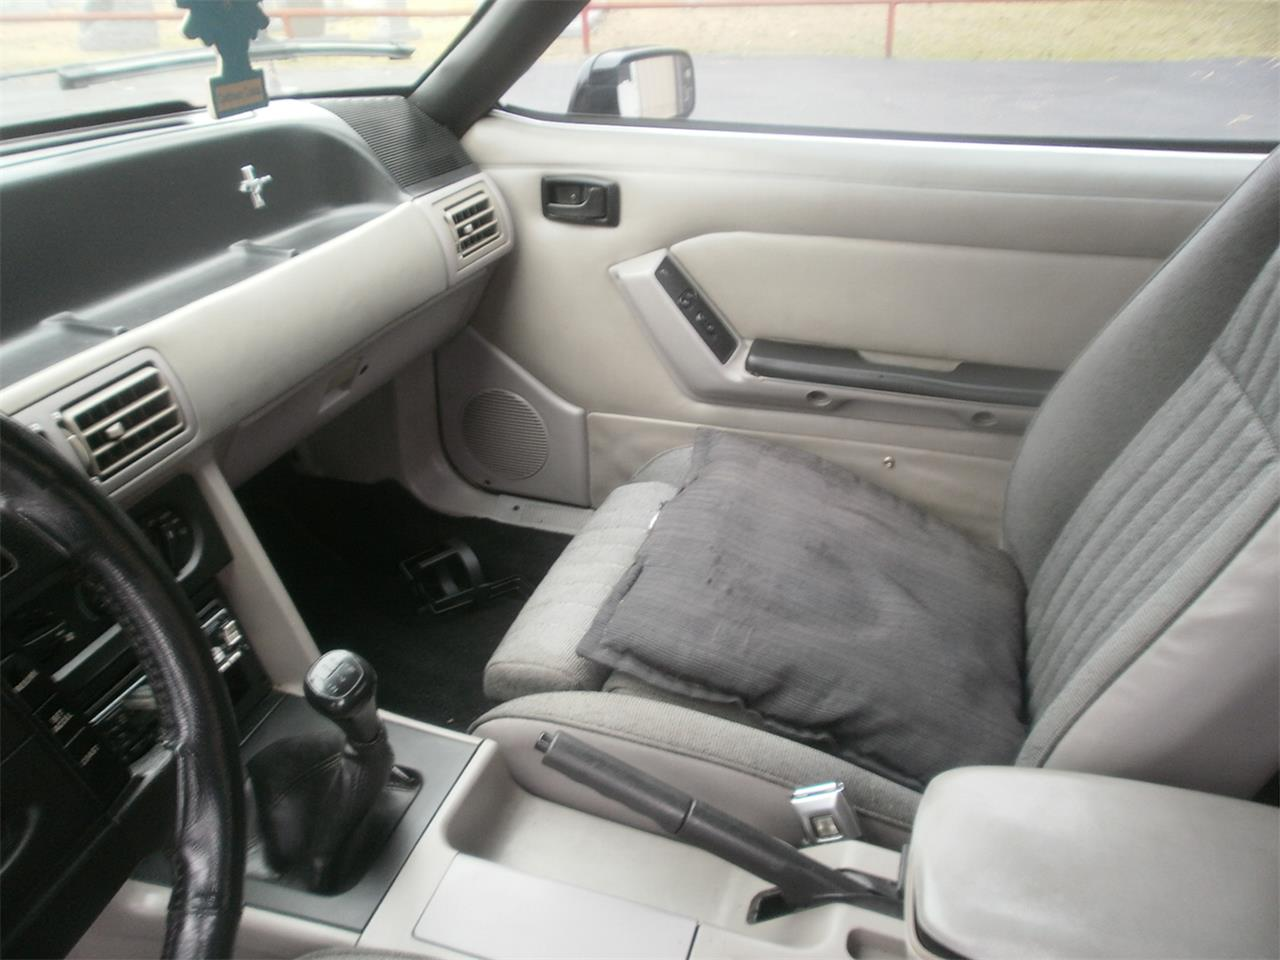 Large Picture of 1991 Ford Mustang located in Texas - $8,500.00 - MA1V